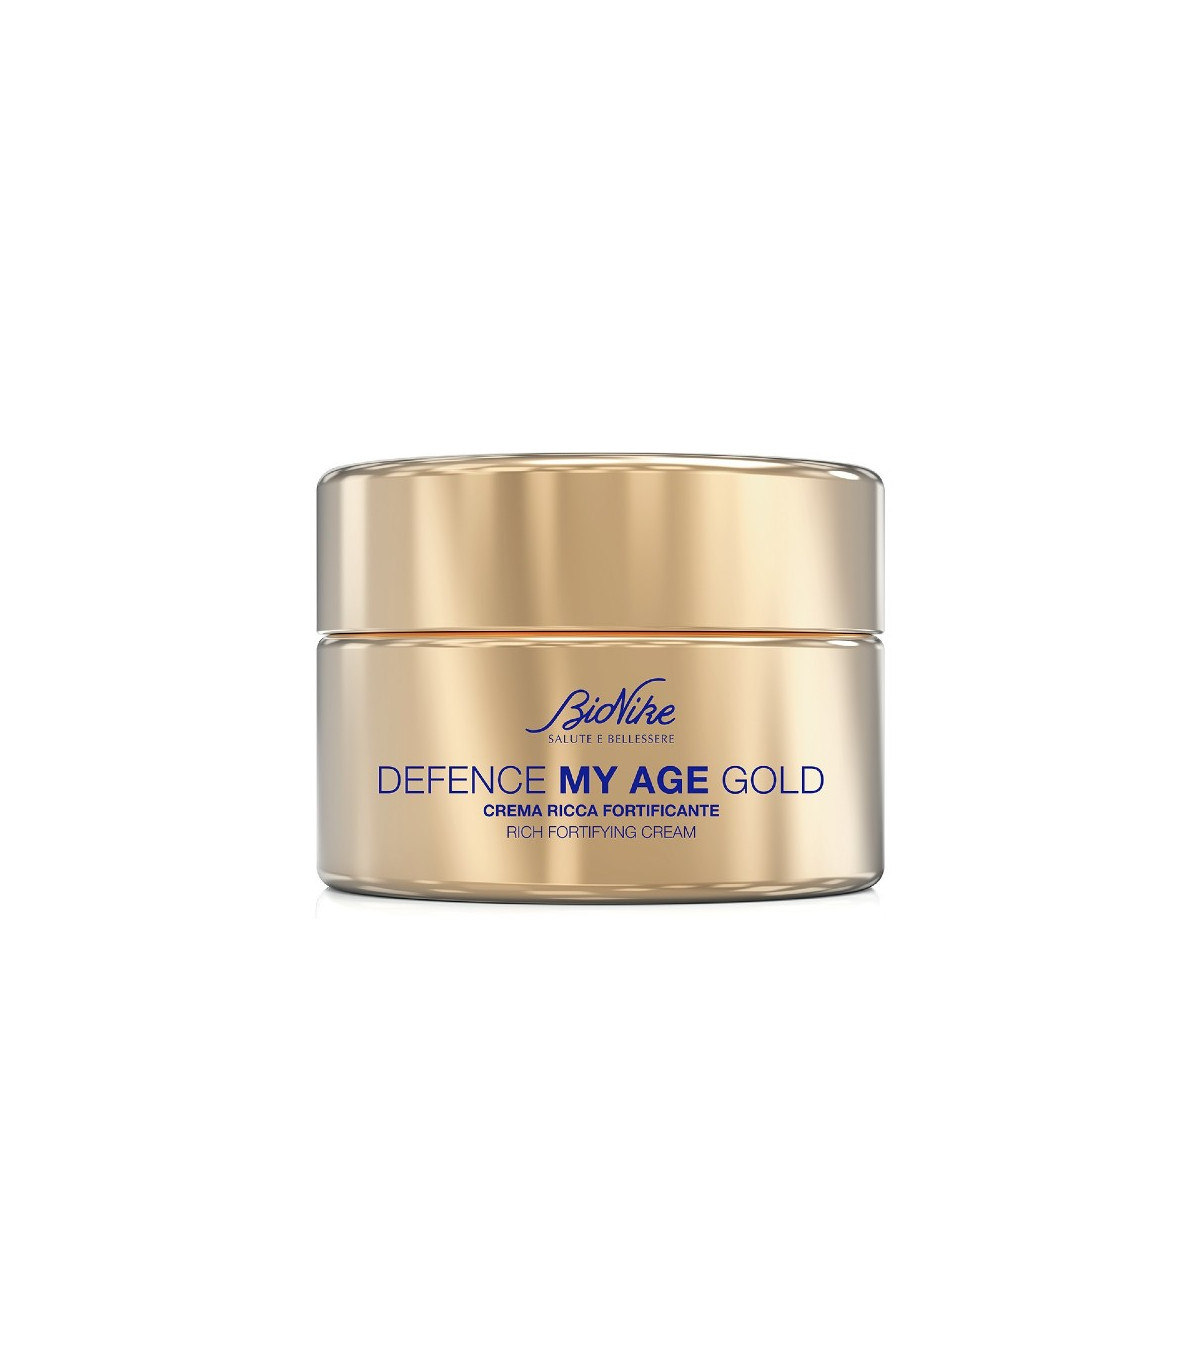 BIONIKE DEFENCE MY AGE GOLD CREMA RICCA FORTIFICANTE 50 ML - Farmapage.it